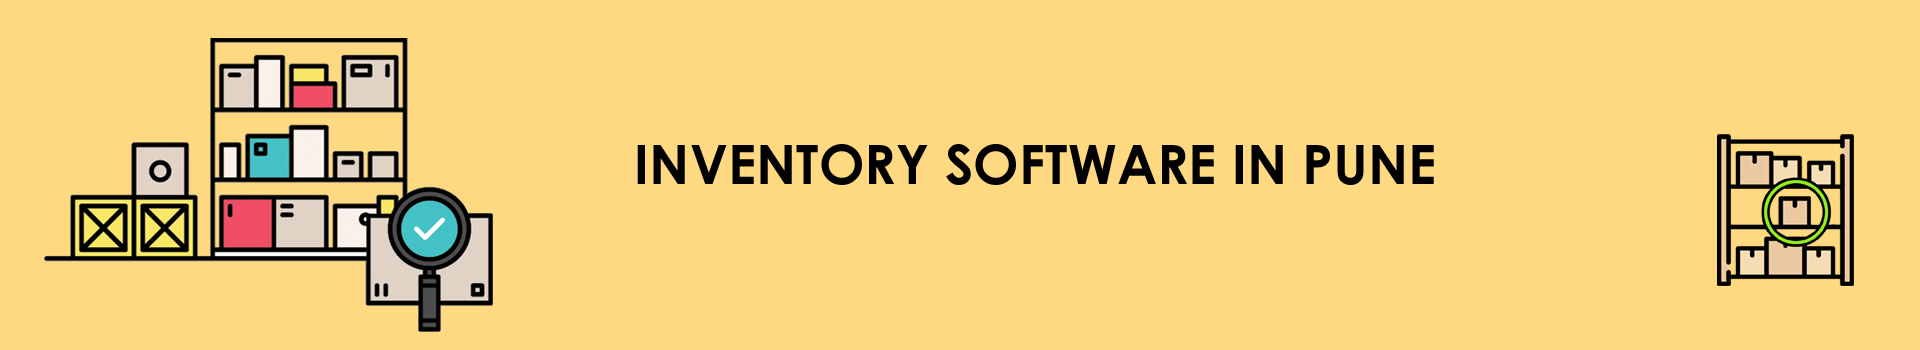 inventry software